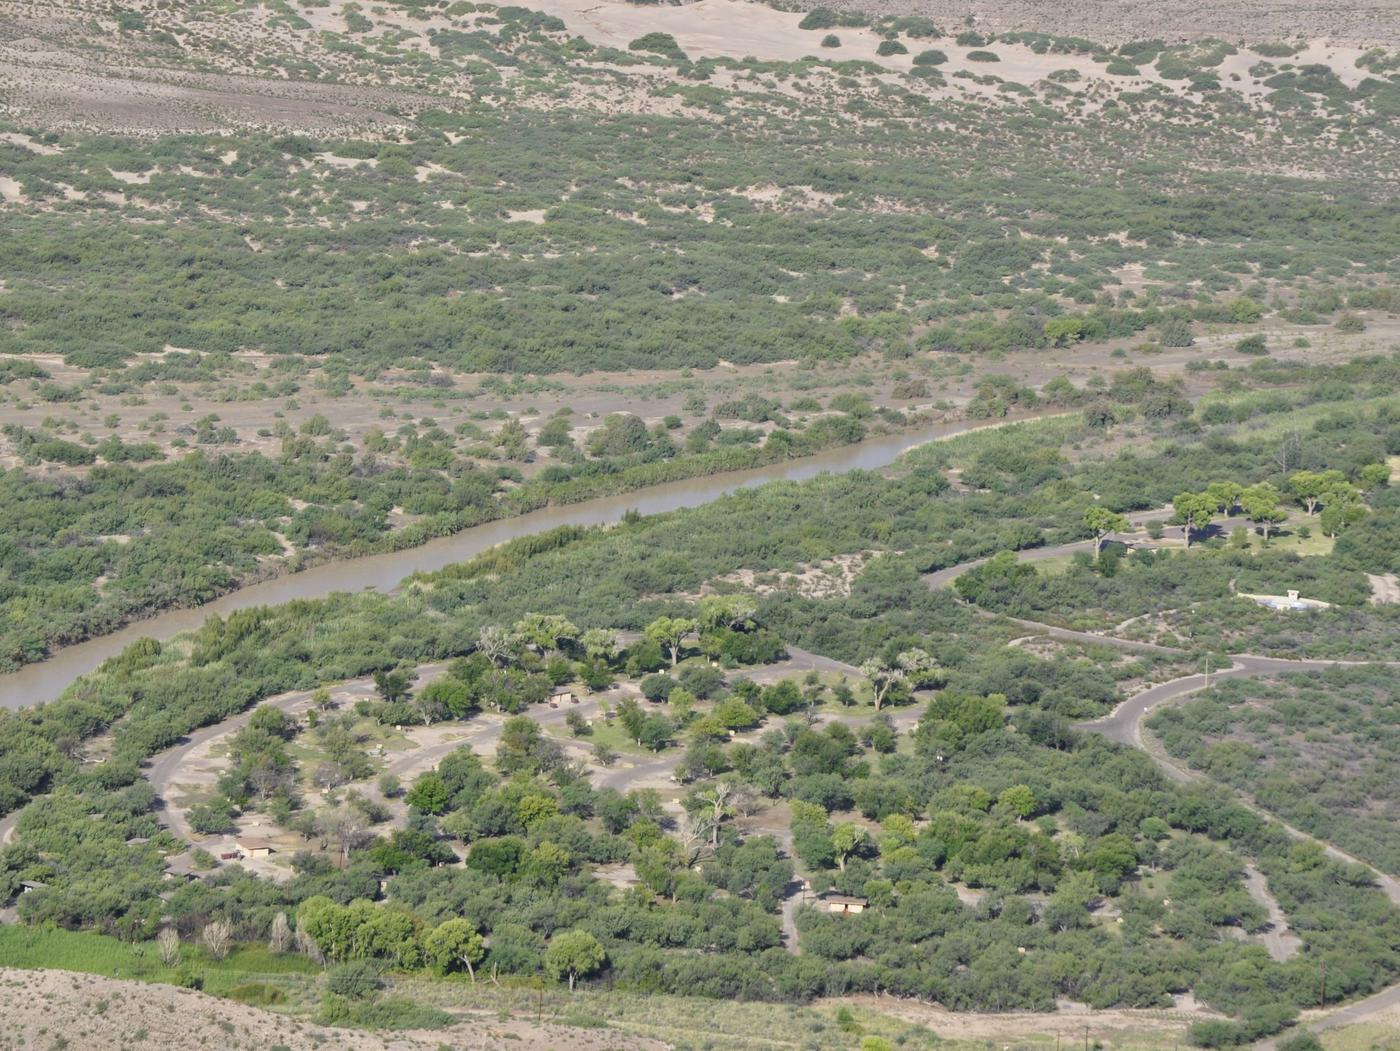 Aerial view of Rio Grande Village Campground, with Rio Grande visible just to the southAerial view of Rio Grande Village. Group campground is rightmost open areas visible.